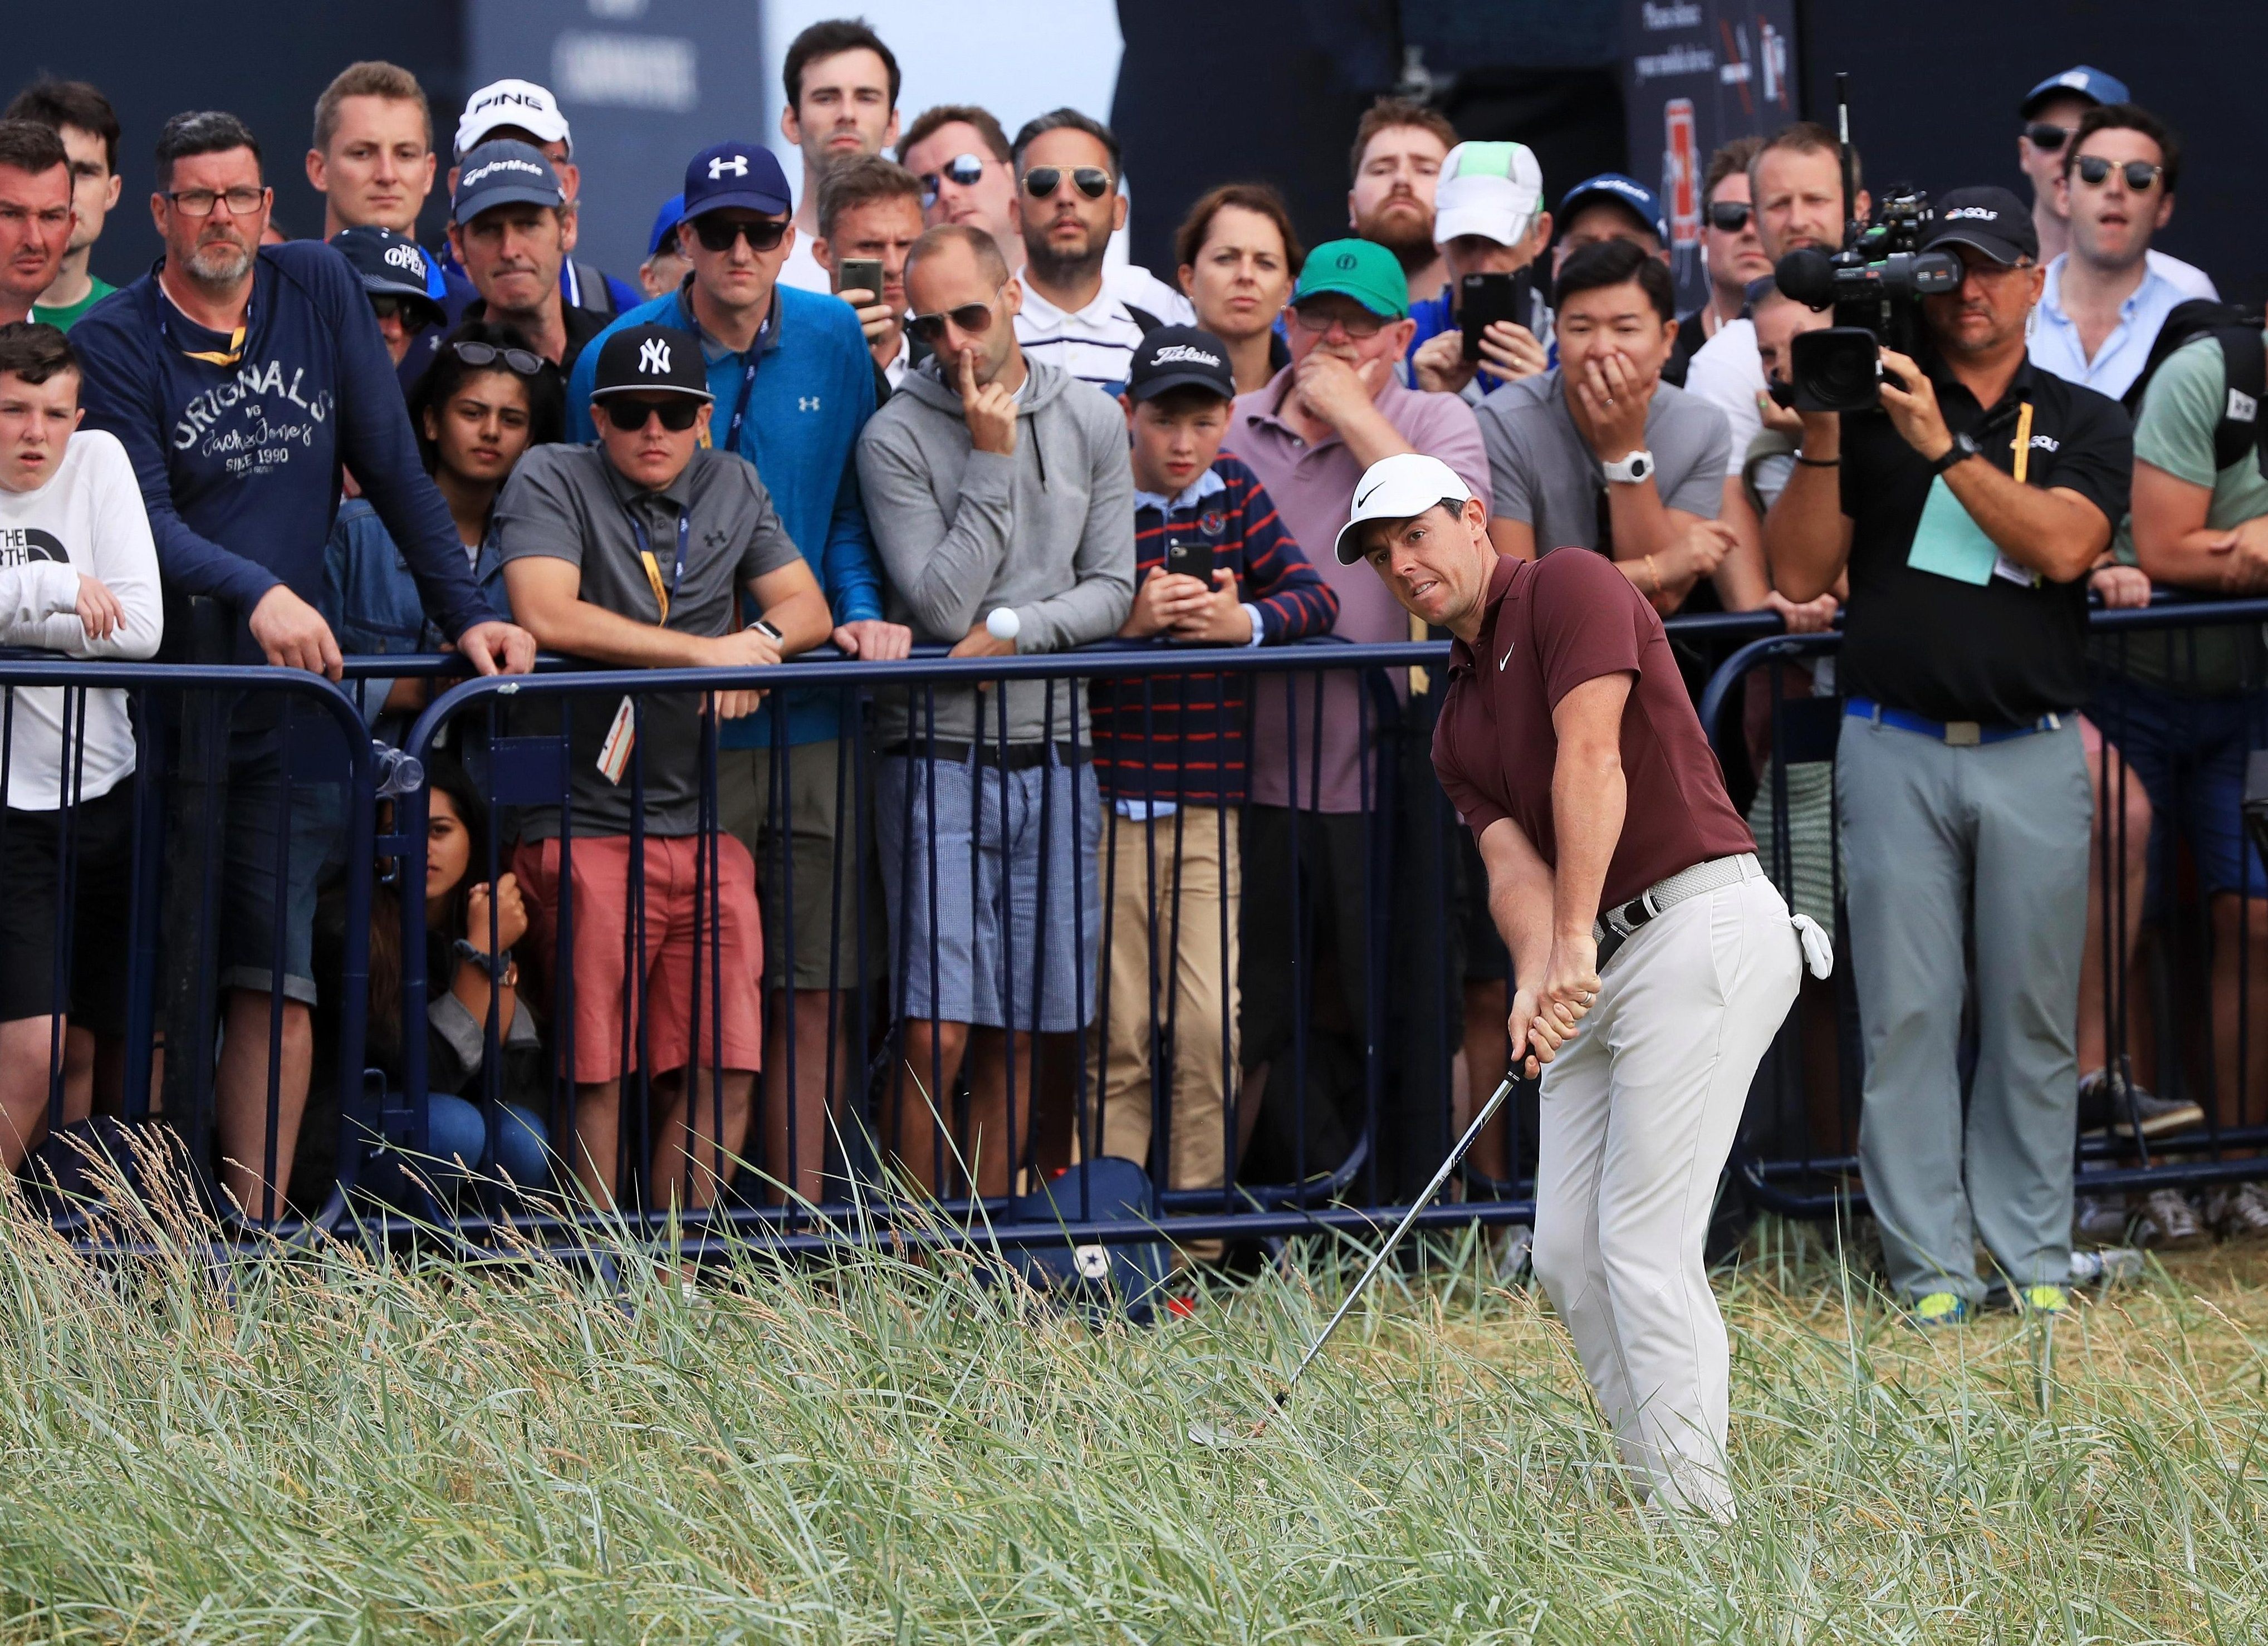 Rory McIlroy finished the third round at Carnoustie with a 70, following two 69s